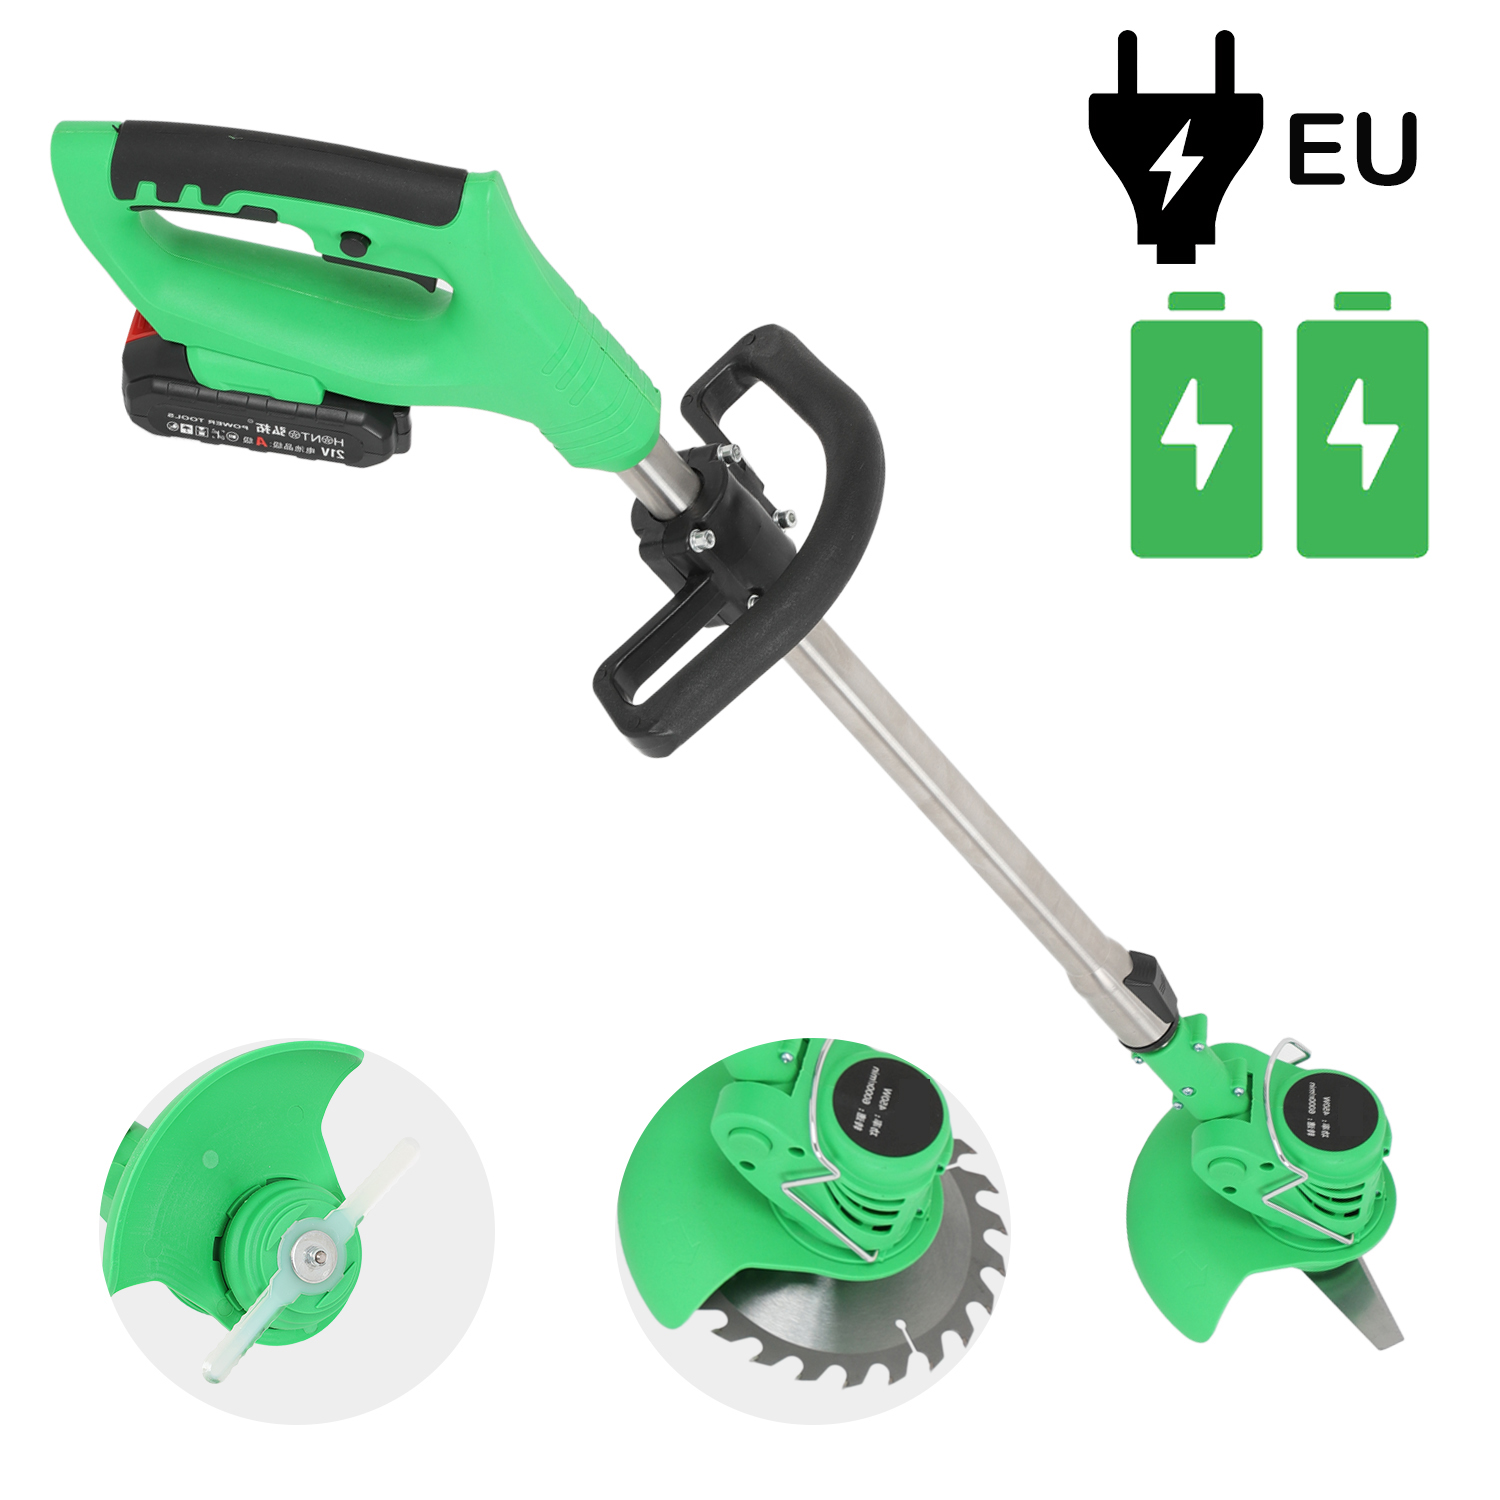 Electric Grass Trimmer Edger Lawn Mower 21V 3000mAh Lithium-Ion Cordless Weed Brush Cutter Kit Garden Tools Grass Cutter Brush